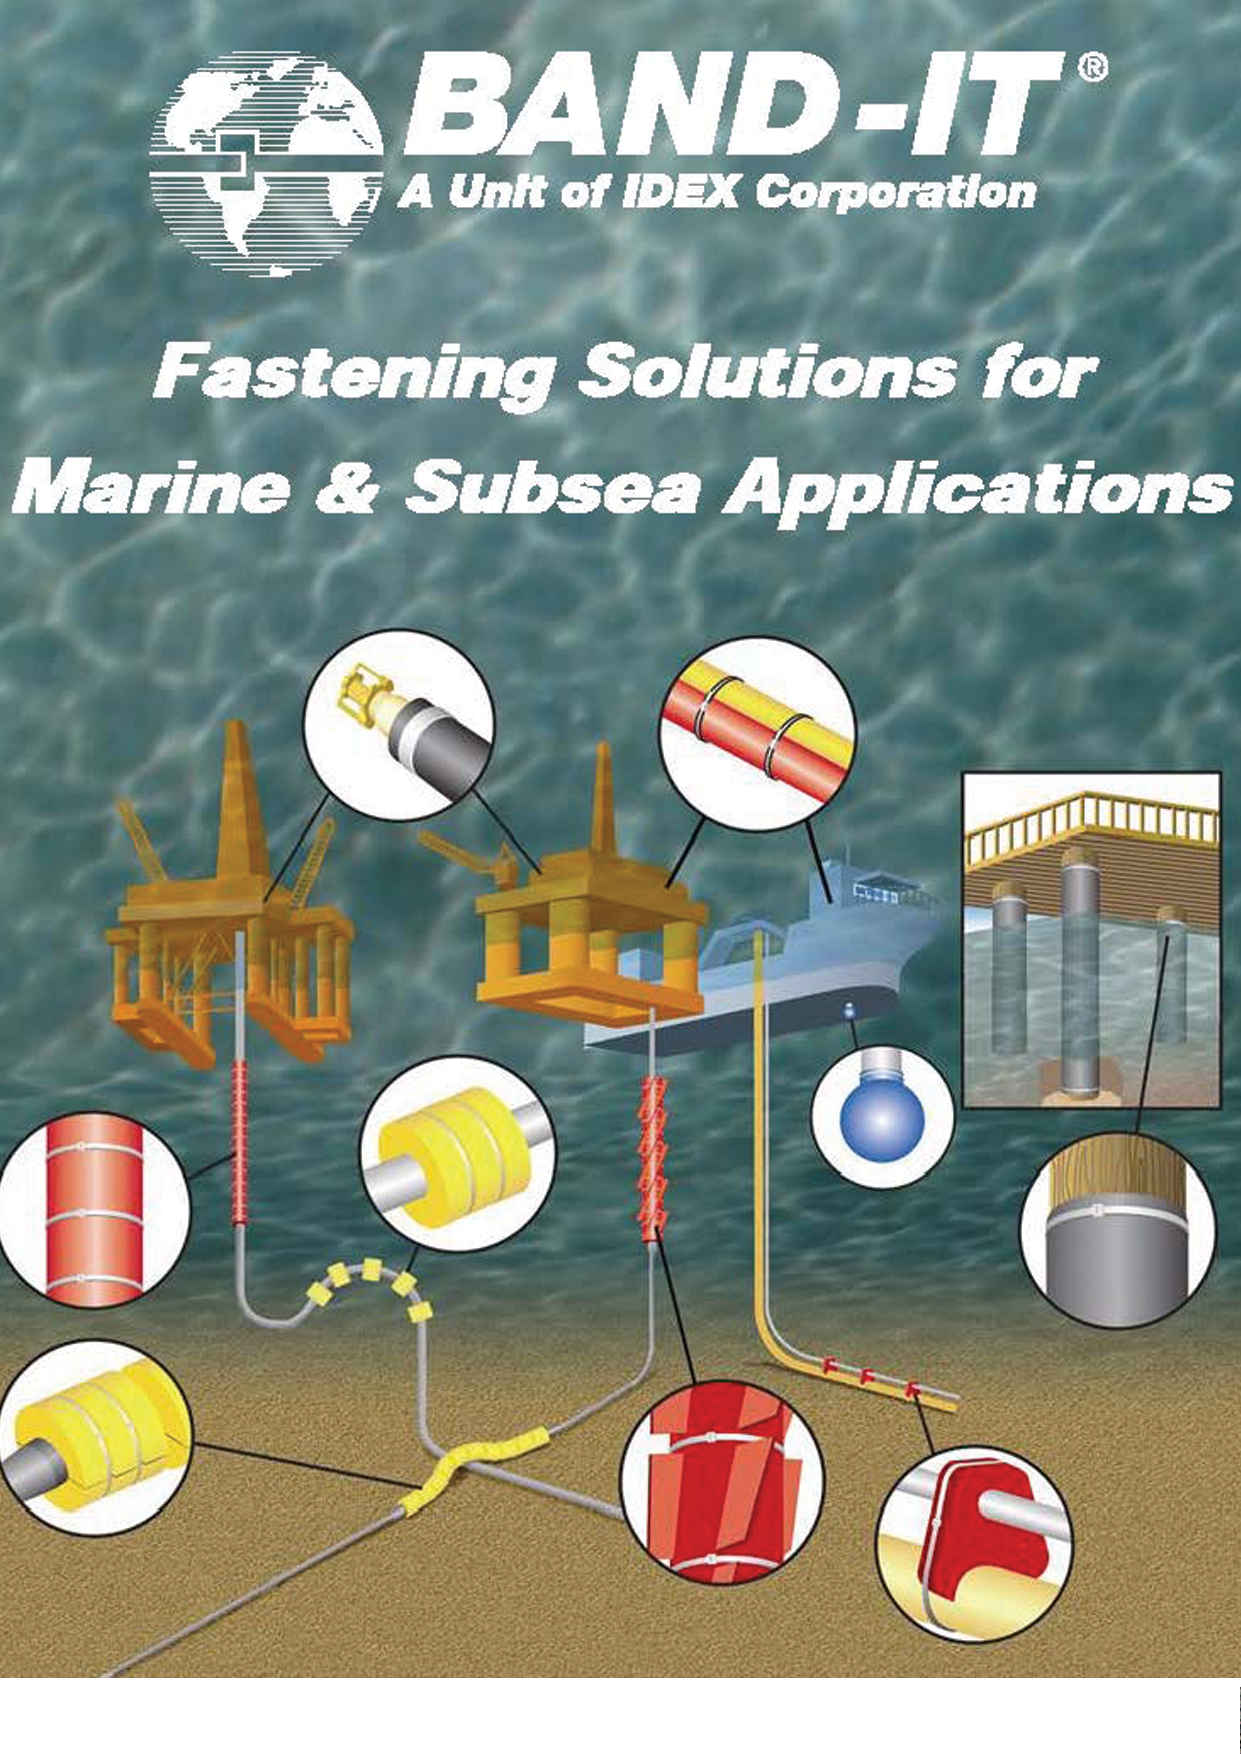 Fastening Solutions for Marine & Subsea Applications